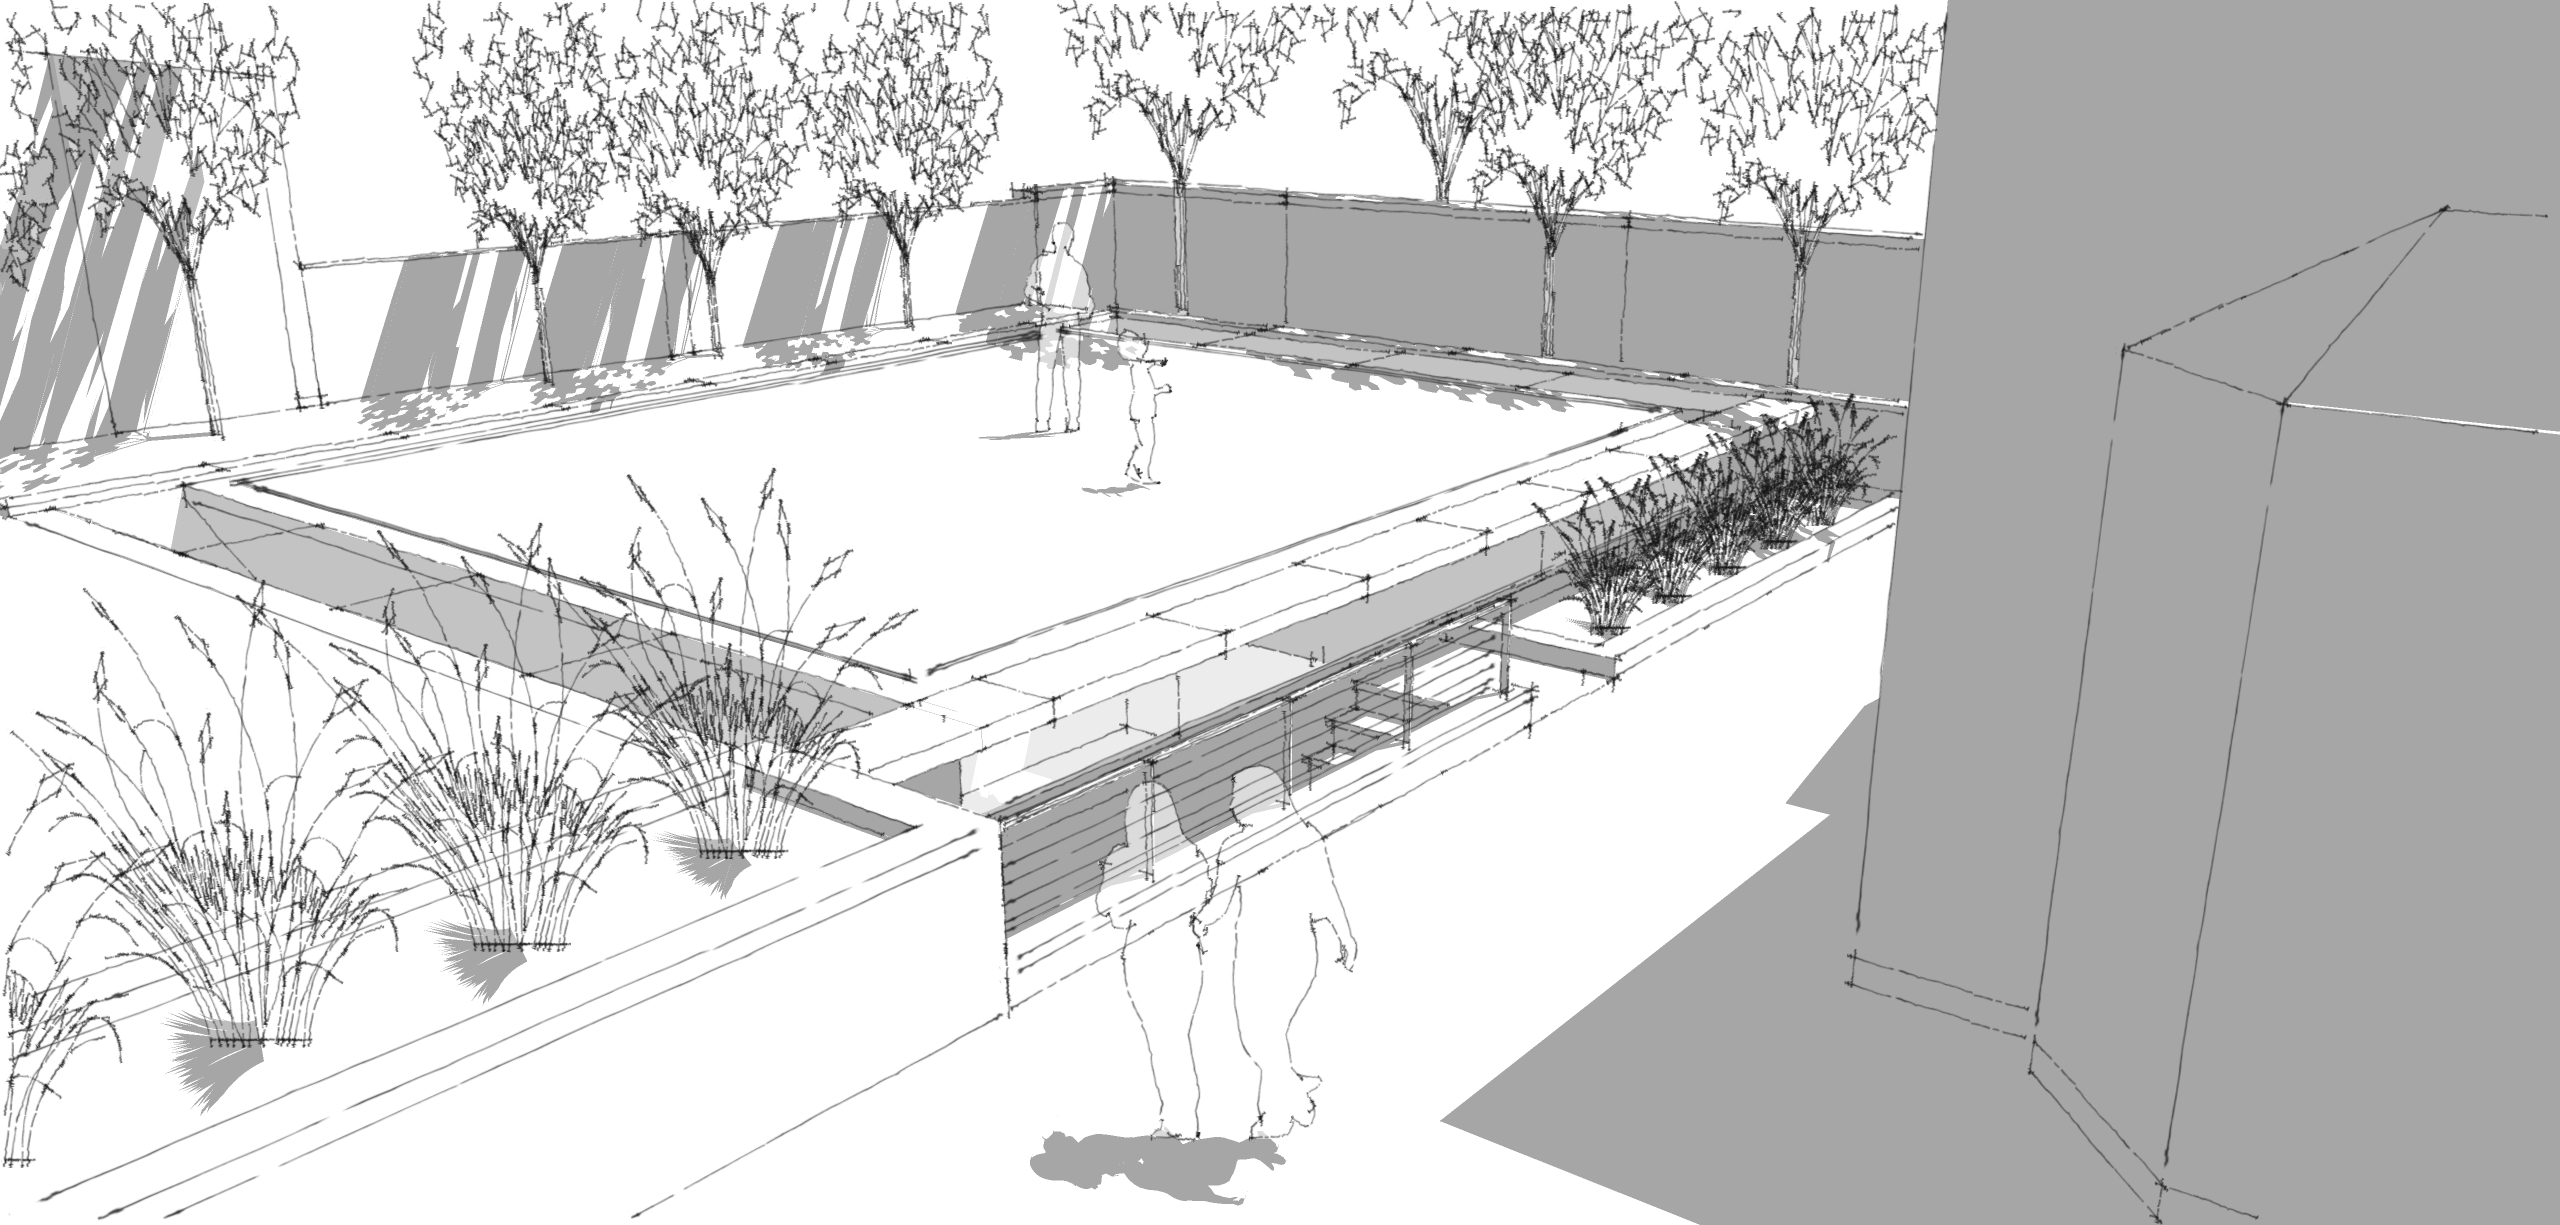 Sub terranean swimming pool commission progresses for Swimming pool sketch